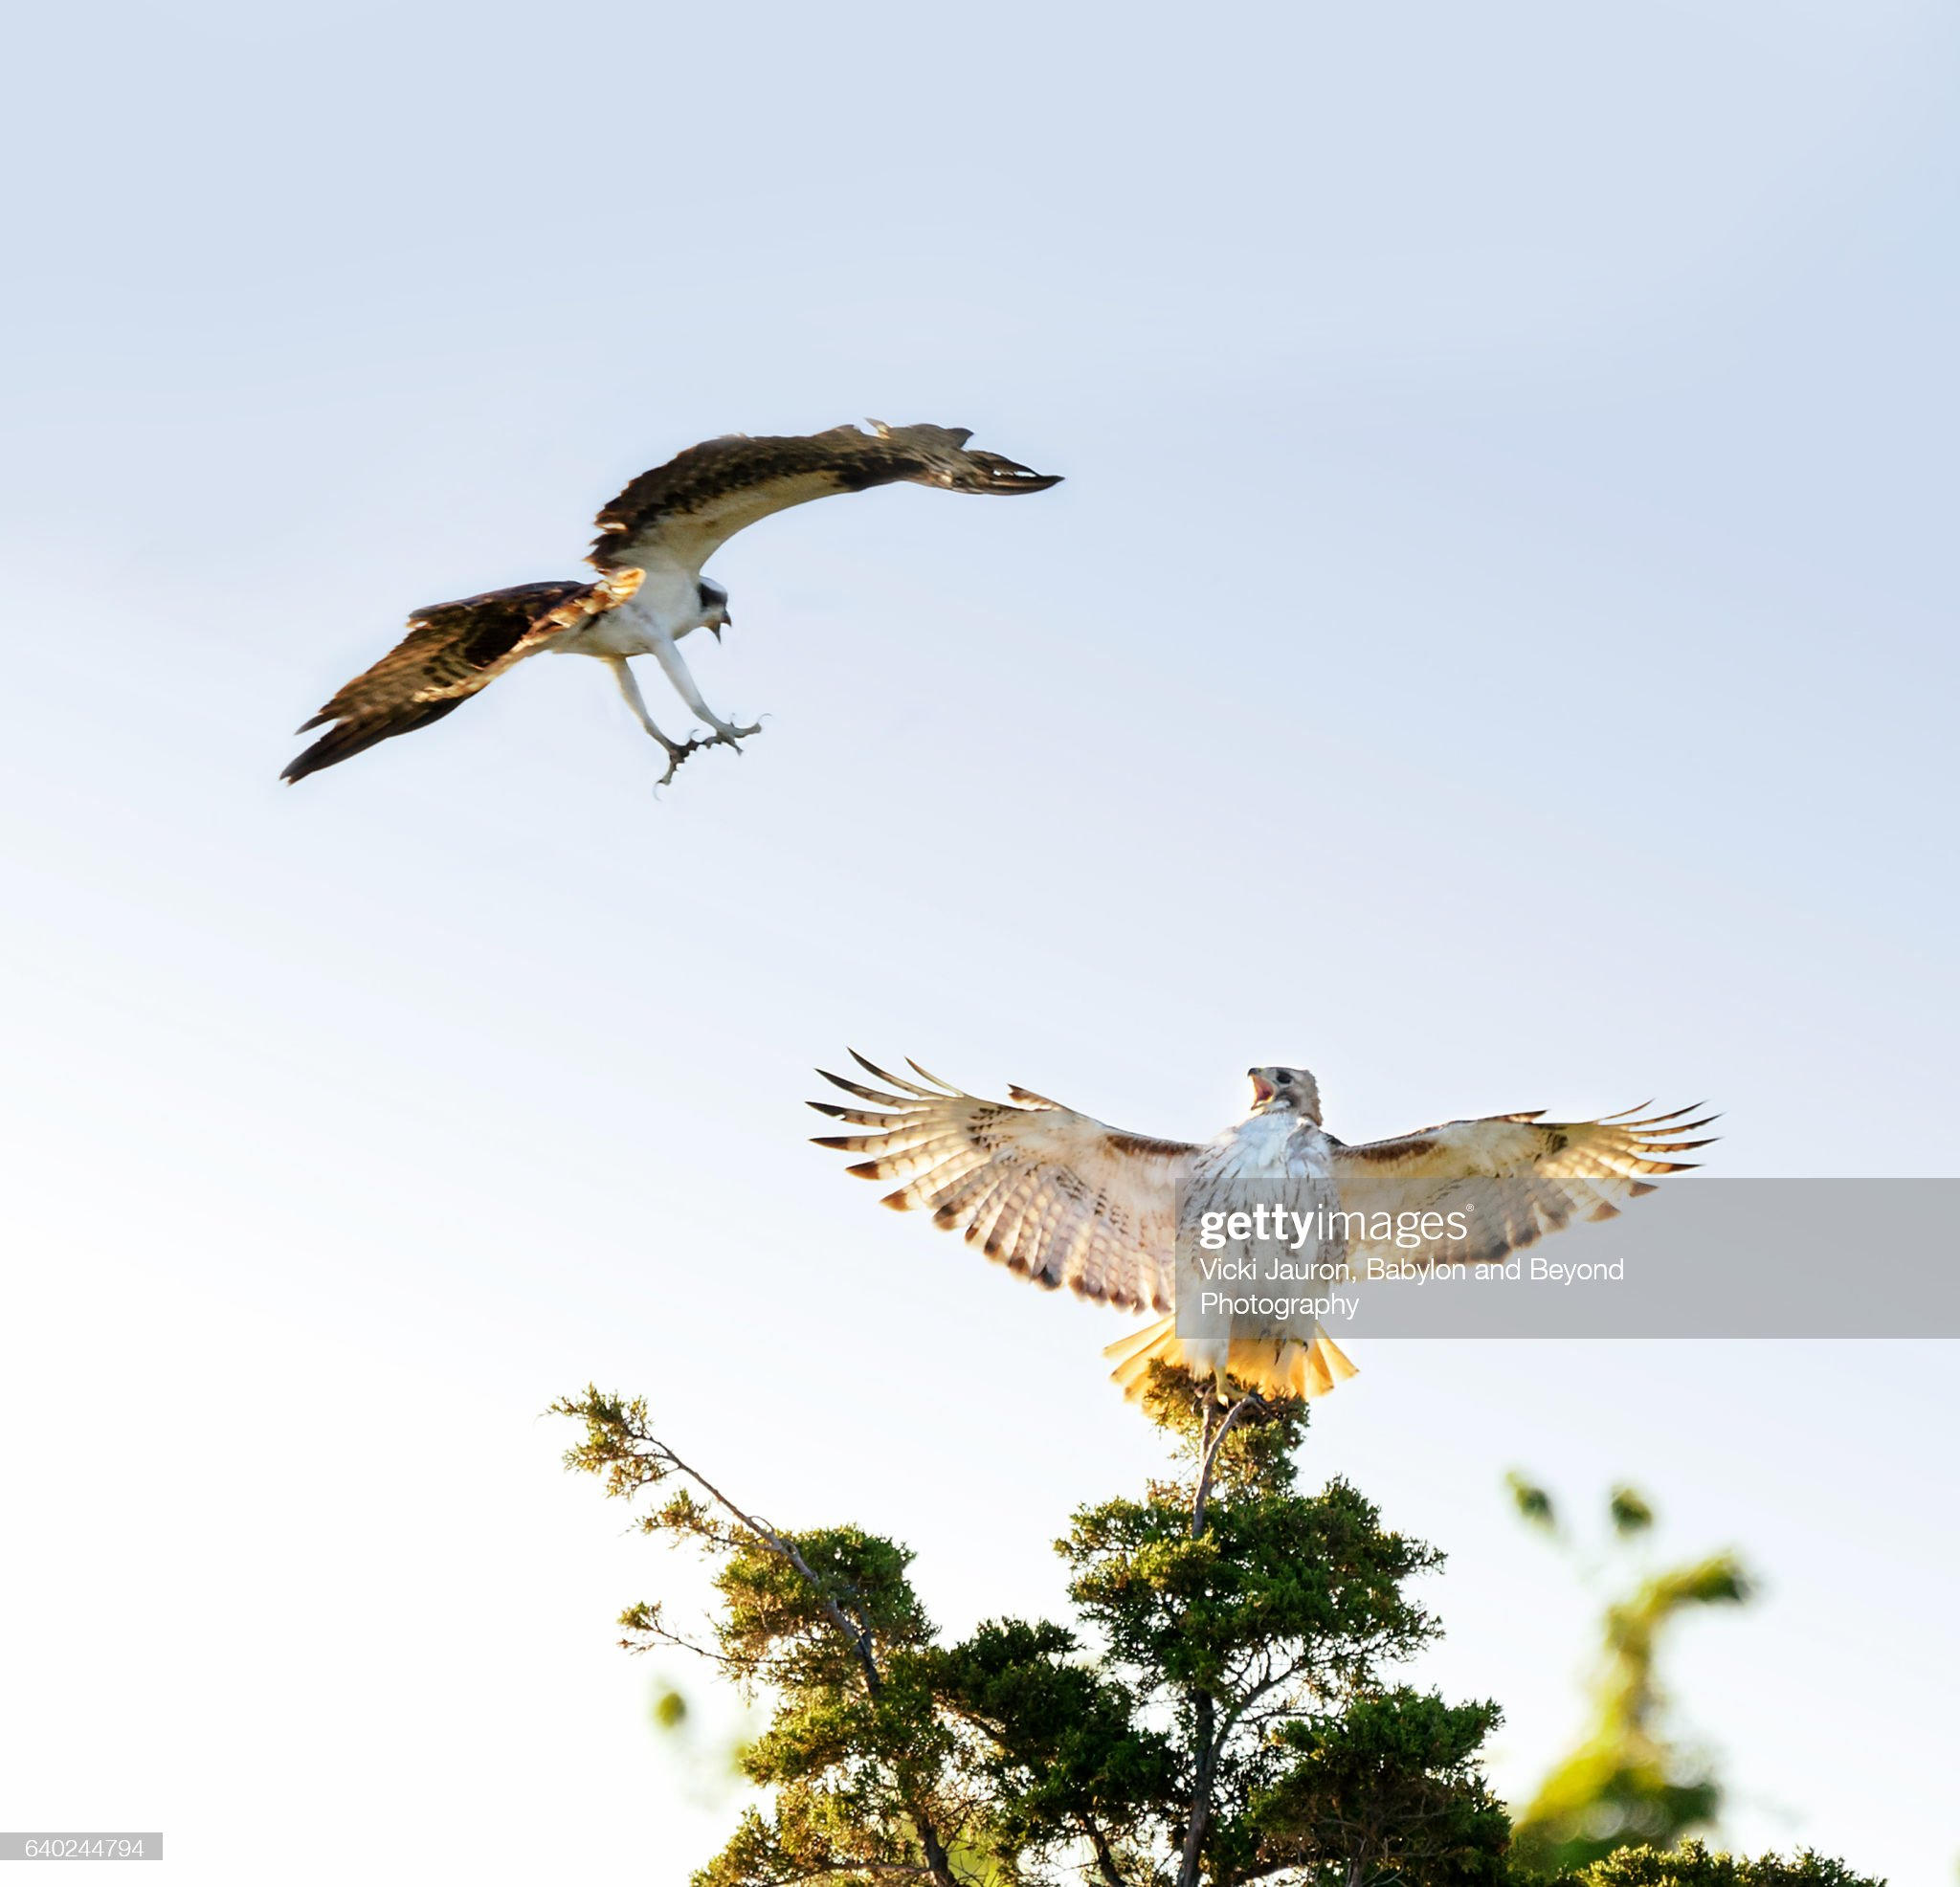 [Image: red-tailed-hawk-being-harassed-by-an-osp...=2048x2048]